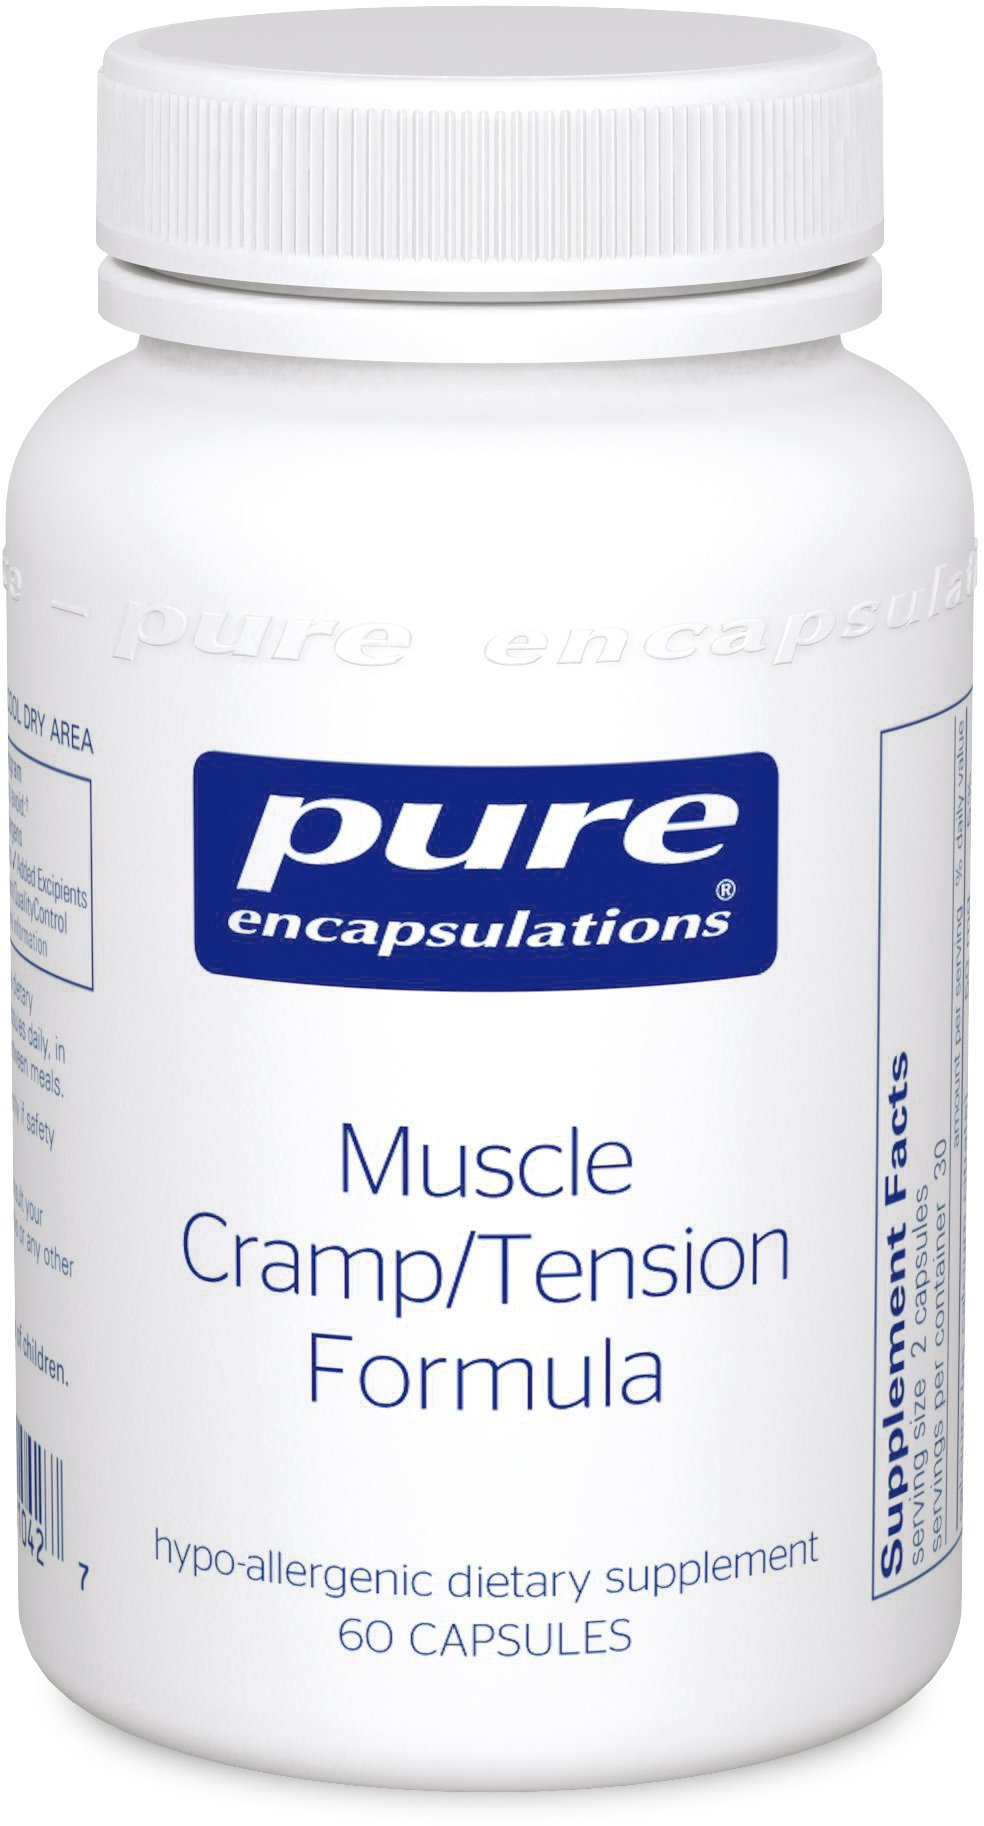 Pure Encapsulations - Muscle Cramp/Tension Formula - Hypoallergenic Supplement to Reduce Occasional Muscle Cramps/Tension and Promote Relaxation* - 60 Capsules